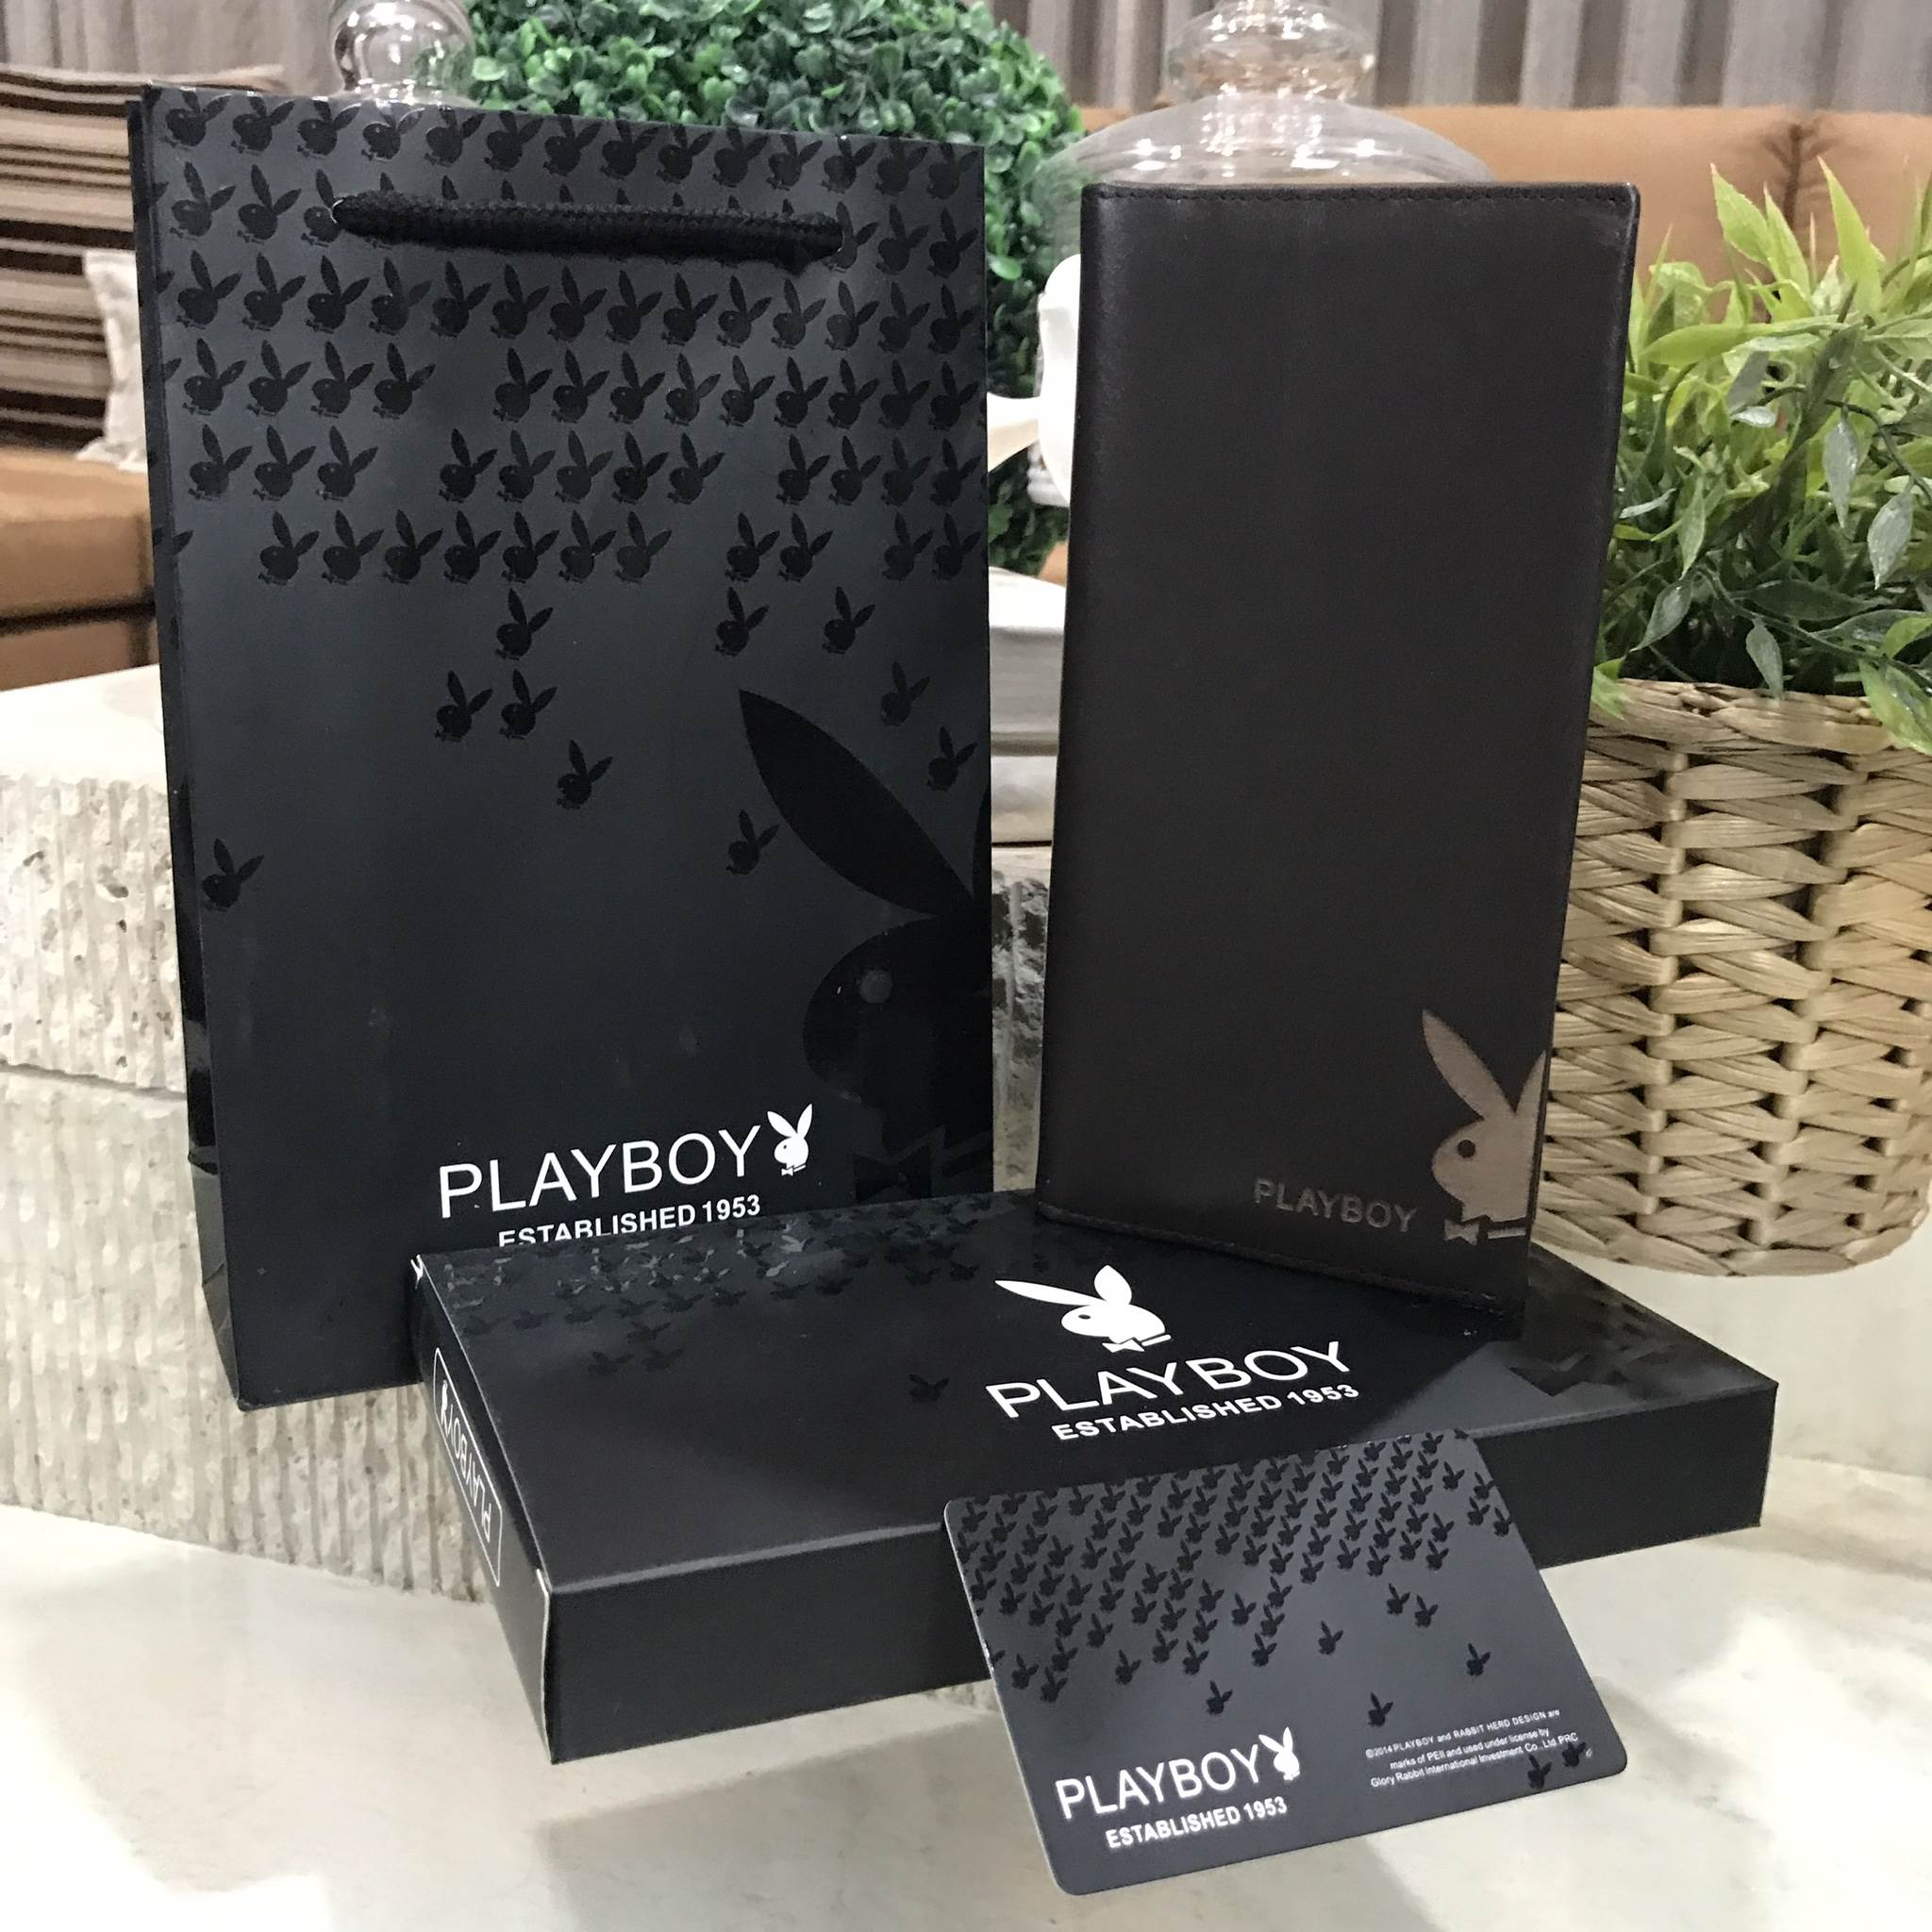 PLAYBOY LONG WALLET Limited Edition New With Box สีน้ำตาล